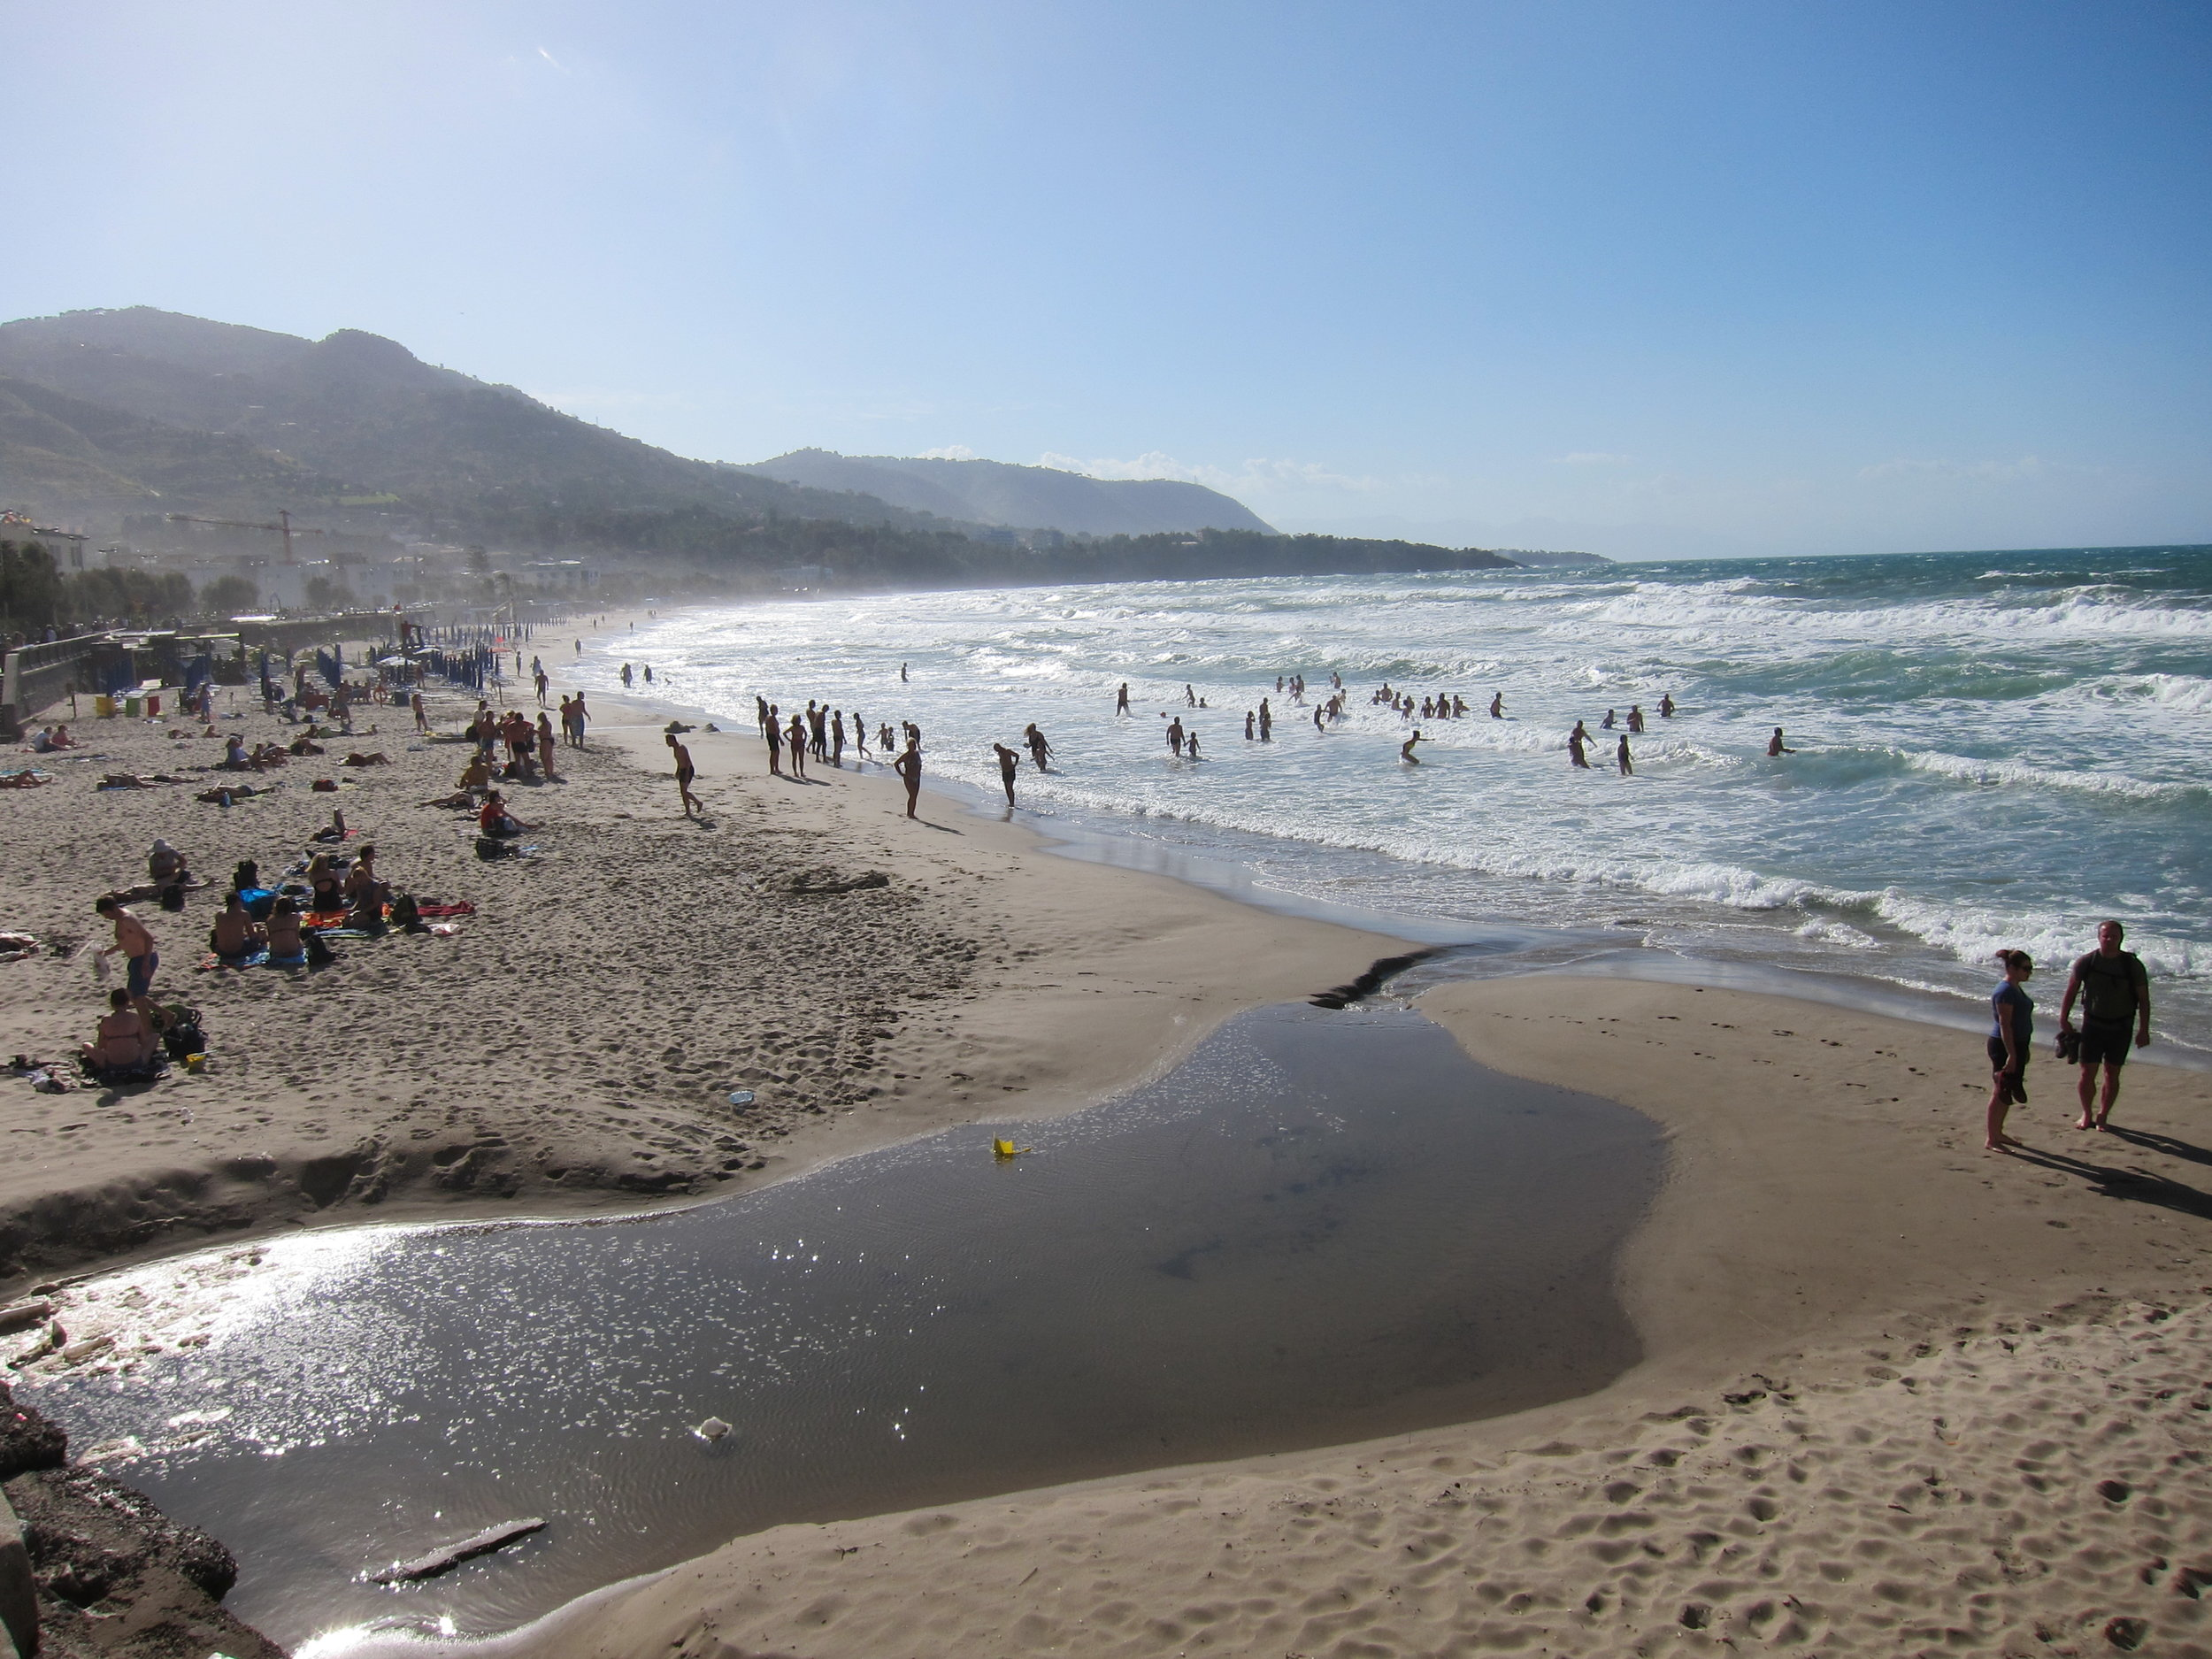 The beach in CefalÚ